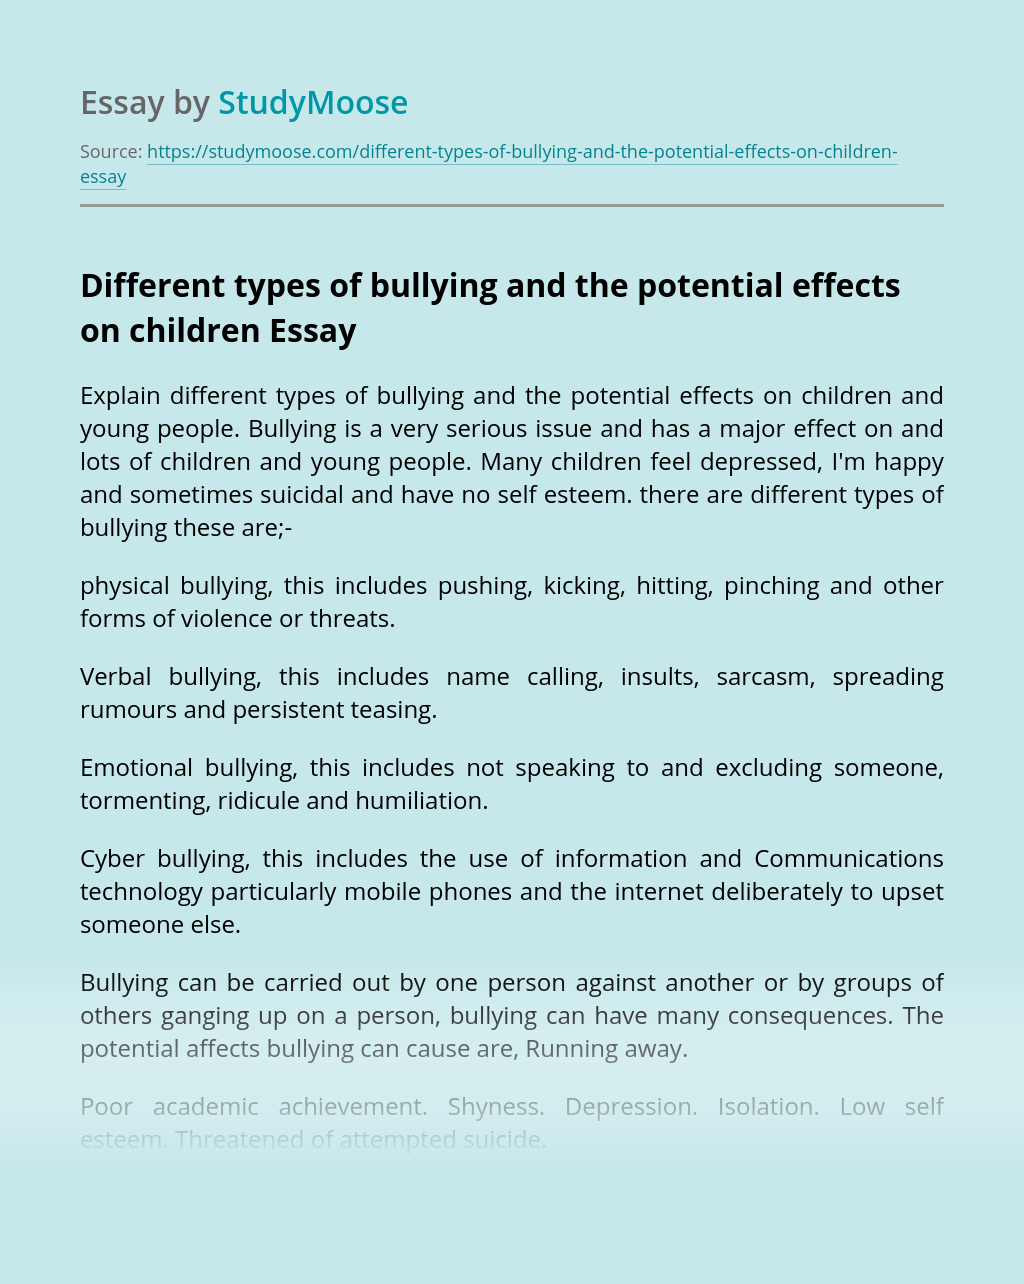 Different types of bullying and the potential effects on children